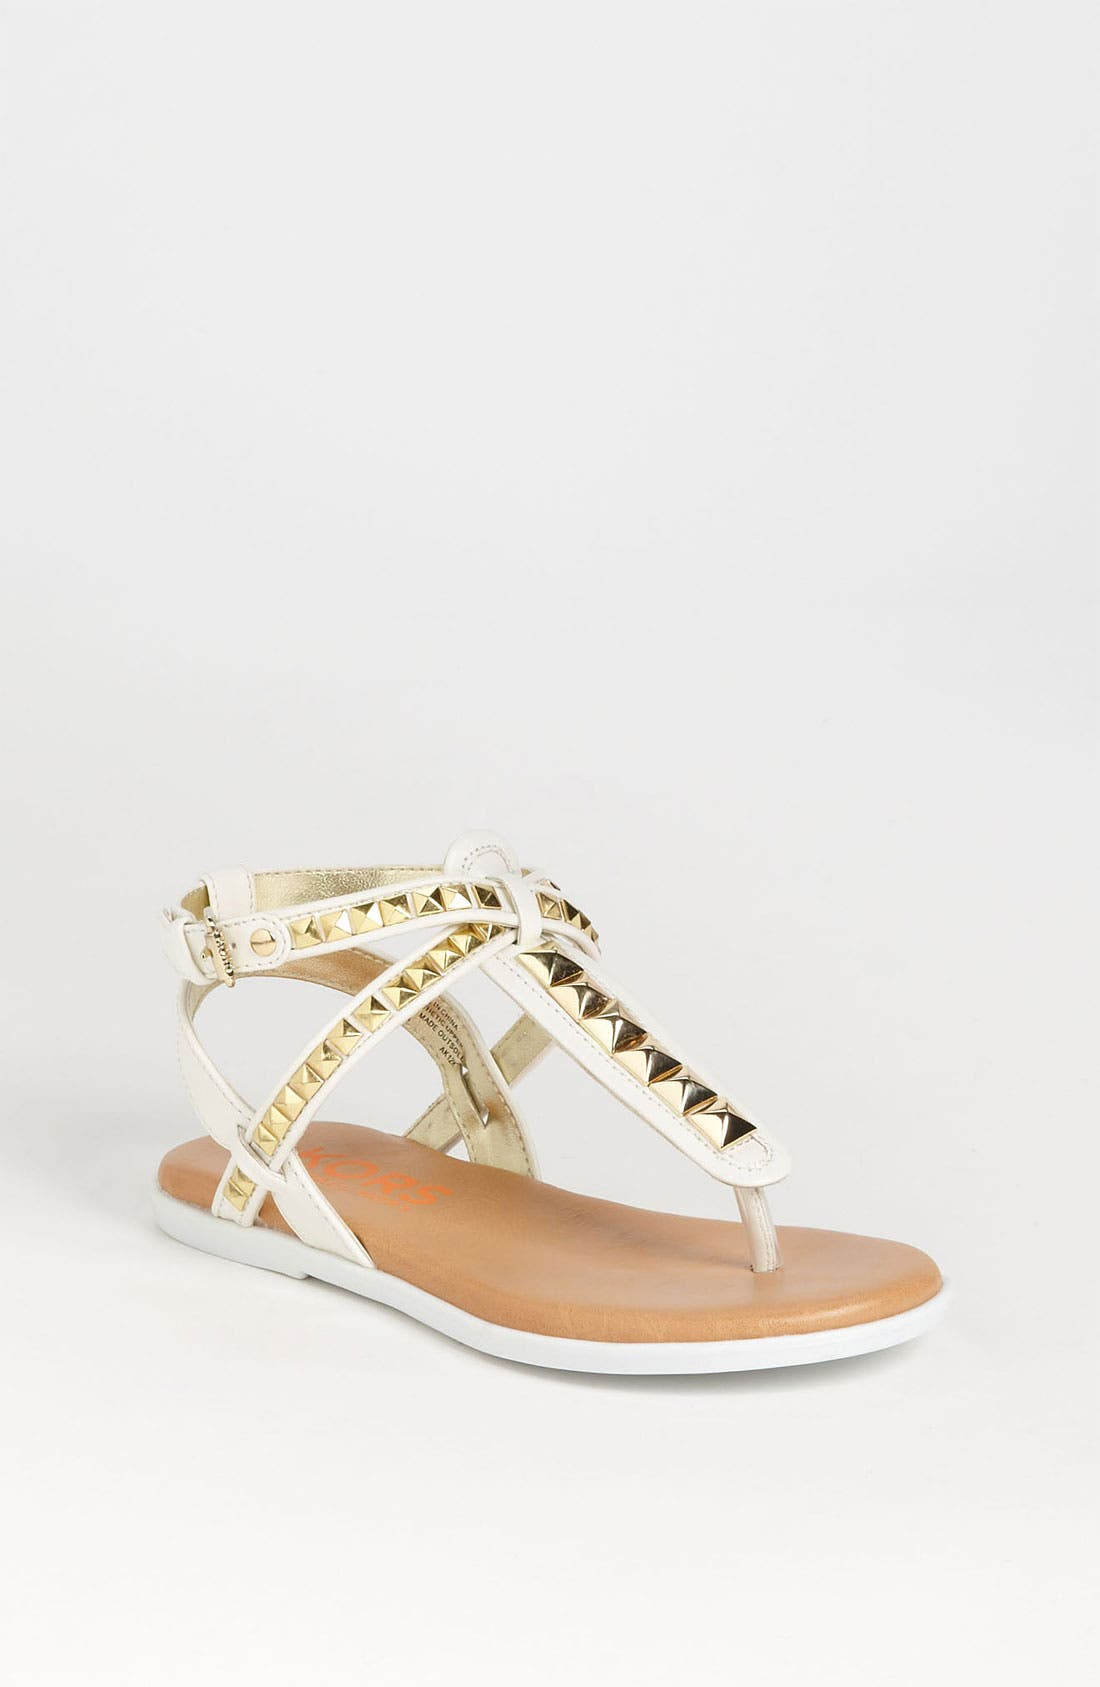 Alternate Image 1 Selected - KORS Michael Kors 'Button' Sandal (Little Kid & Big Kid)